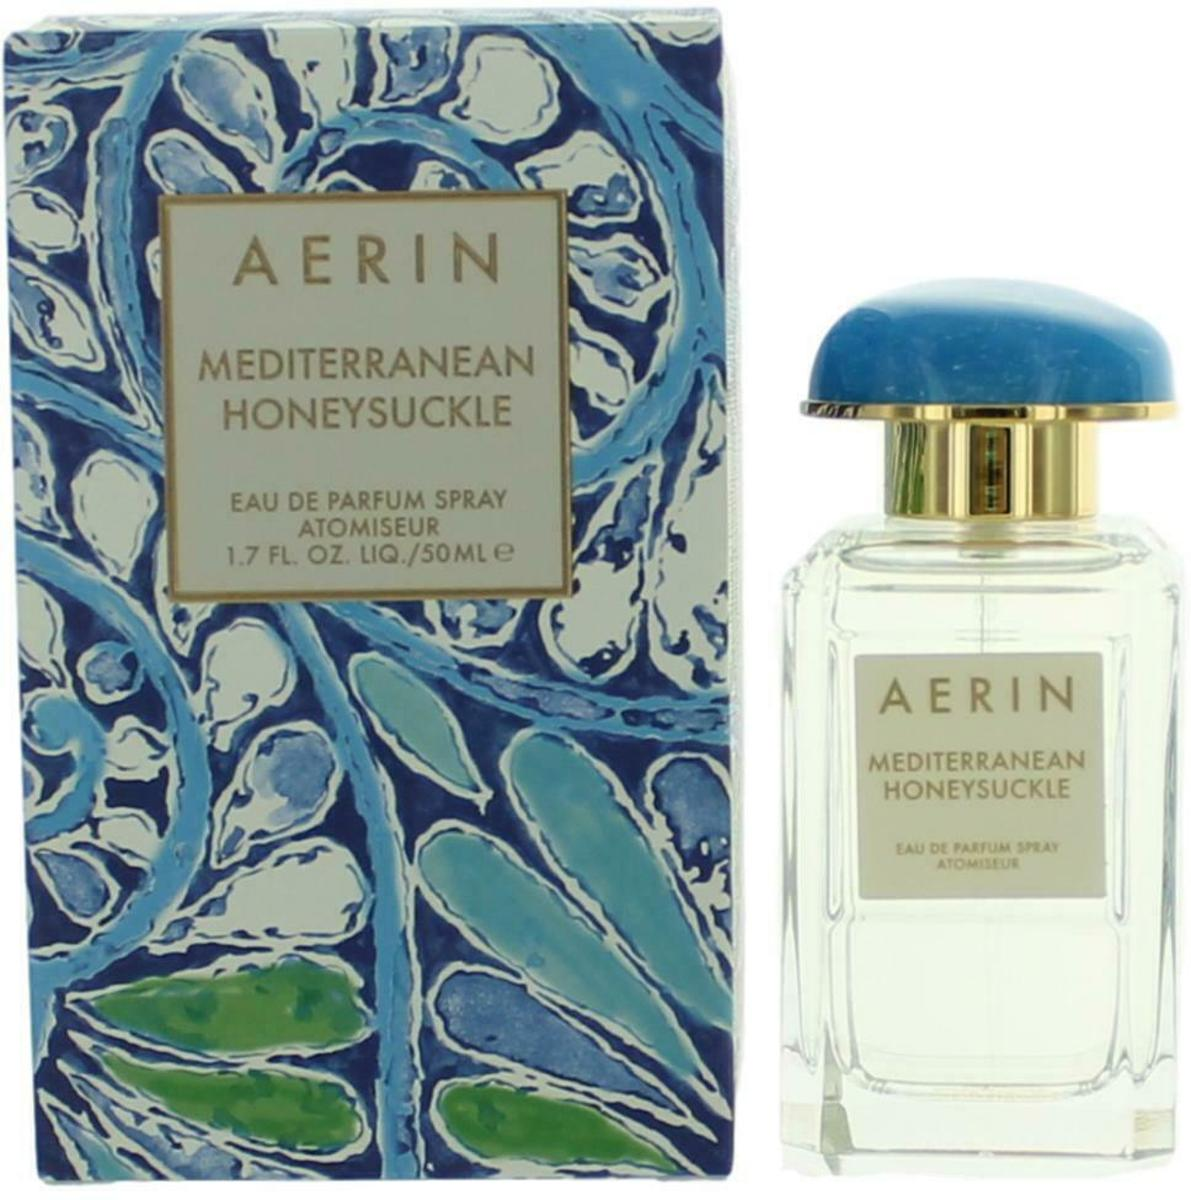 Aerin Mediterranean Honeysuckle edp 50 ml